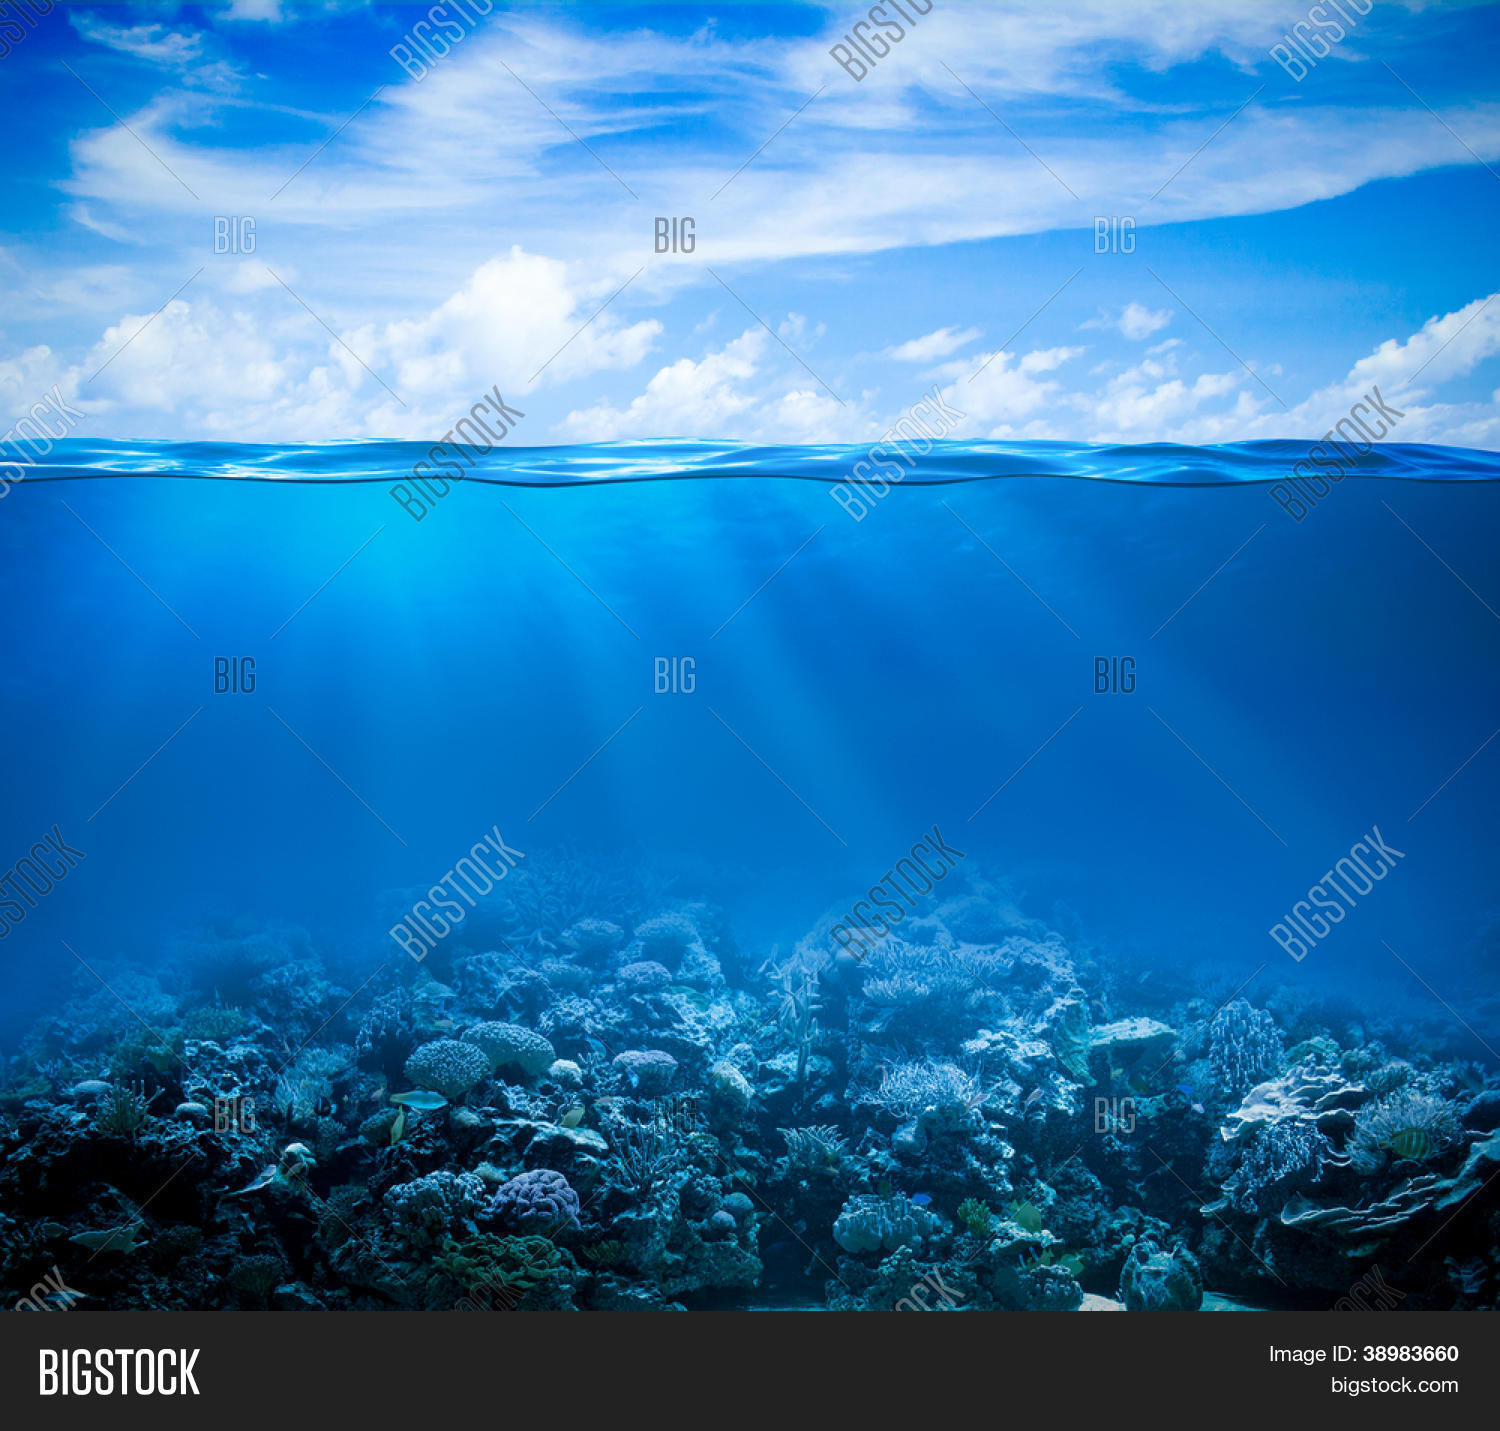 sea bed beach vector - photo #22